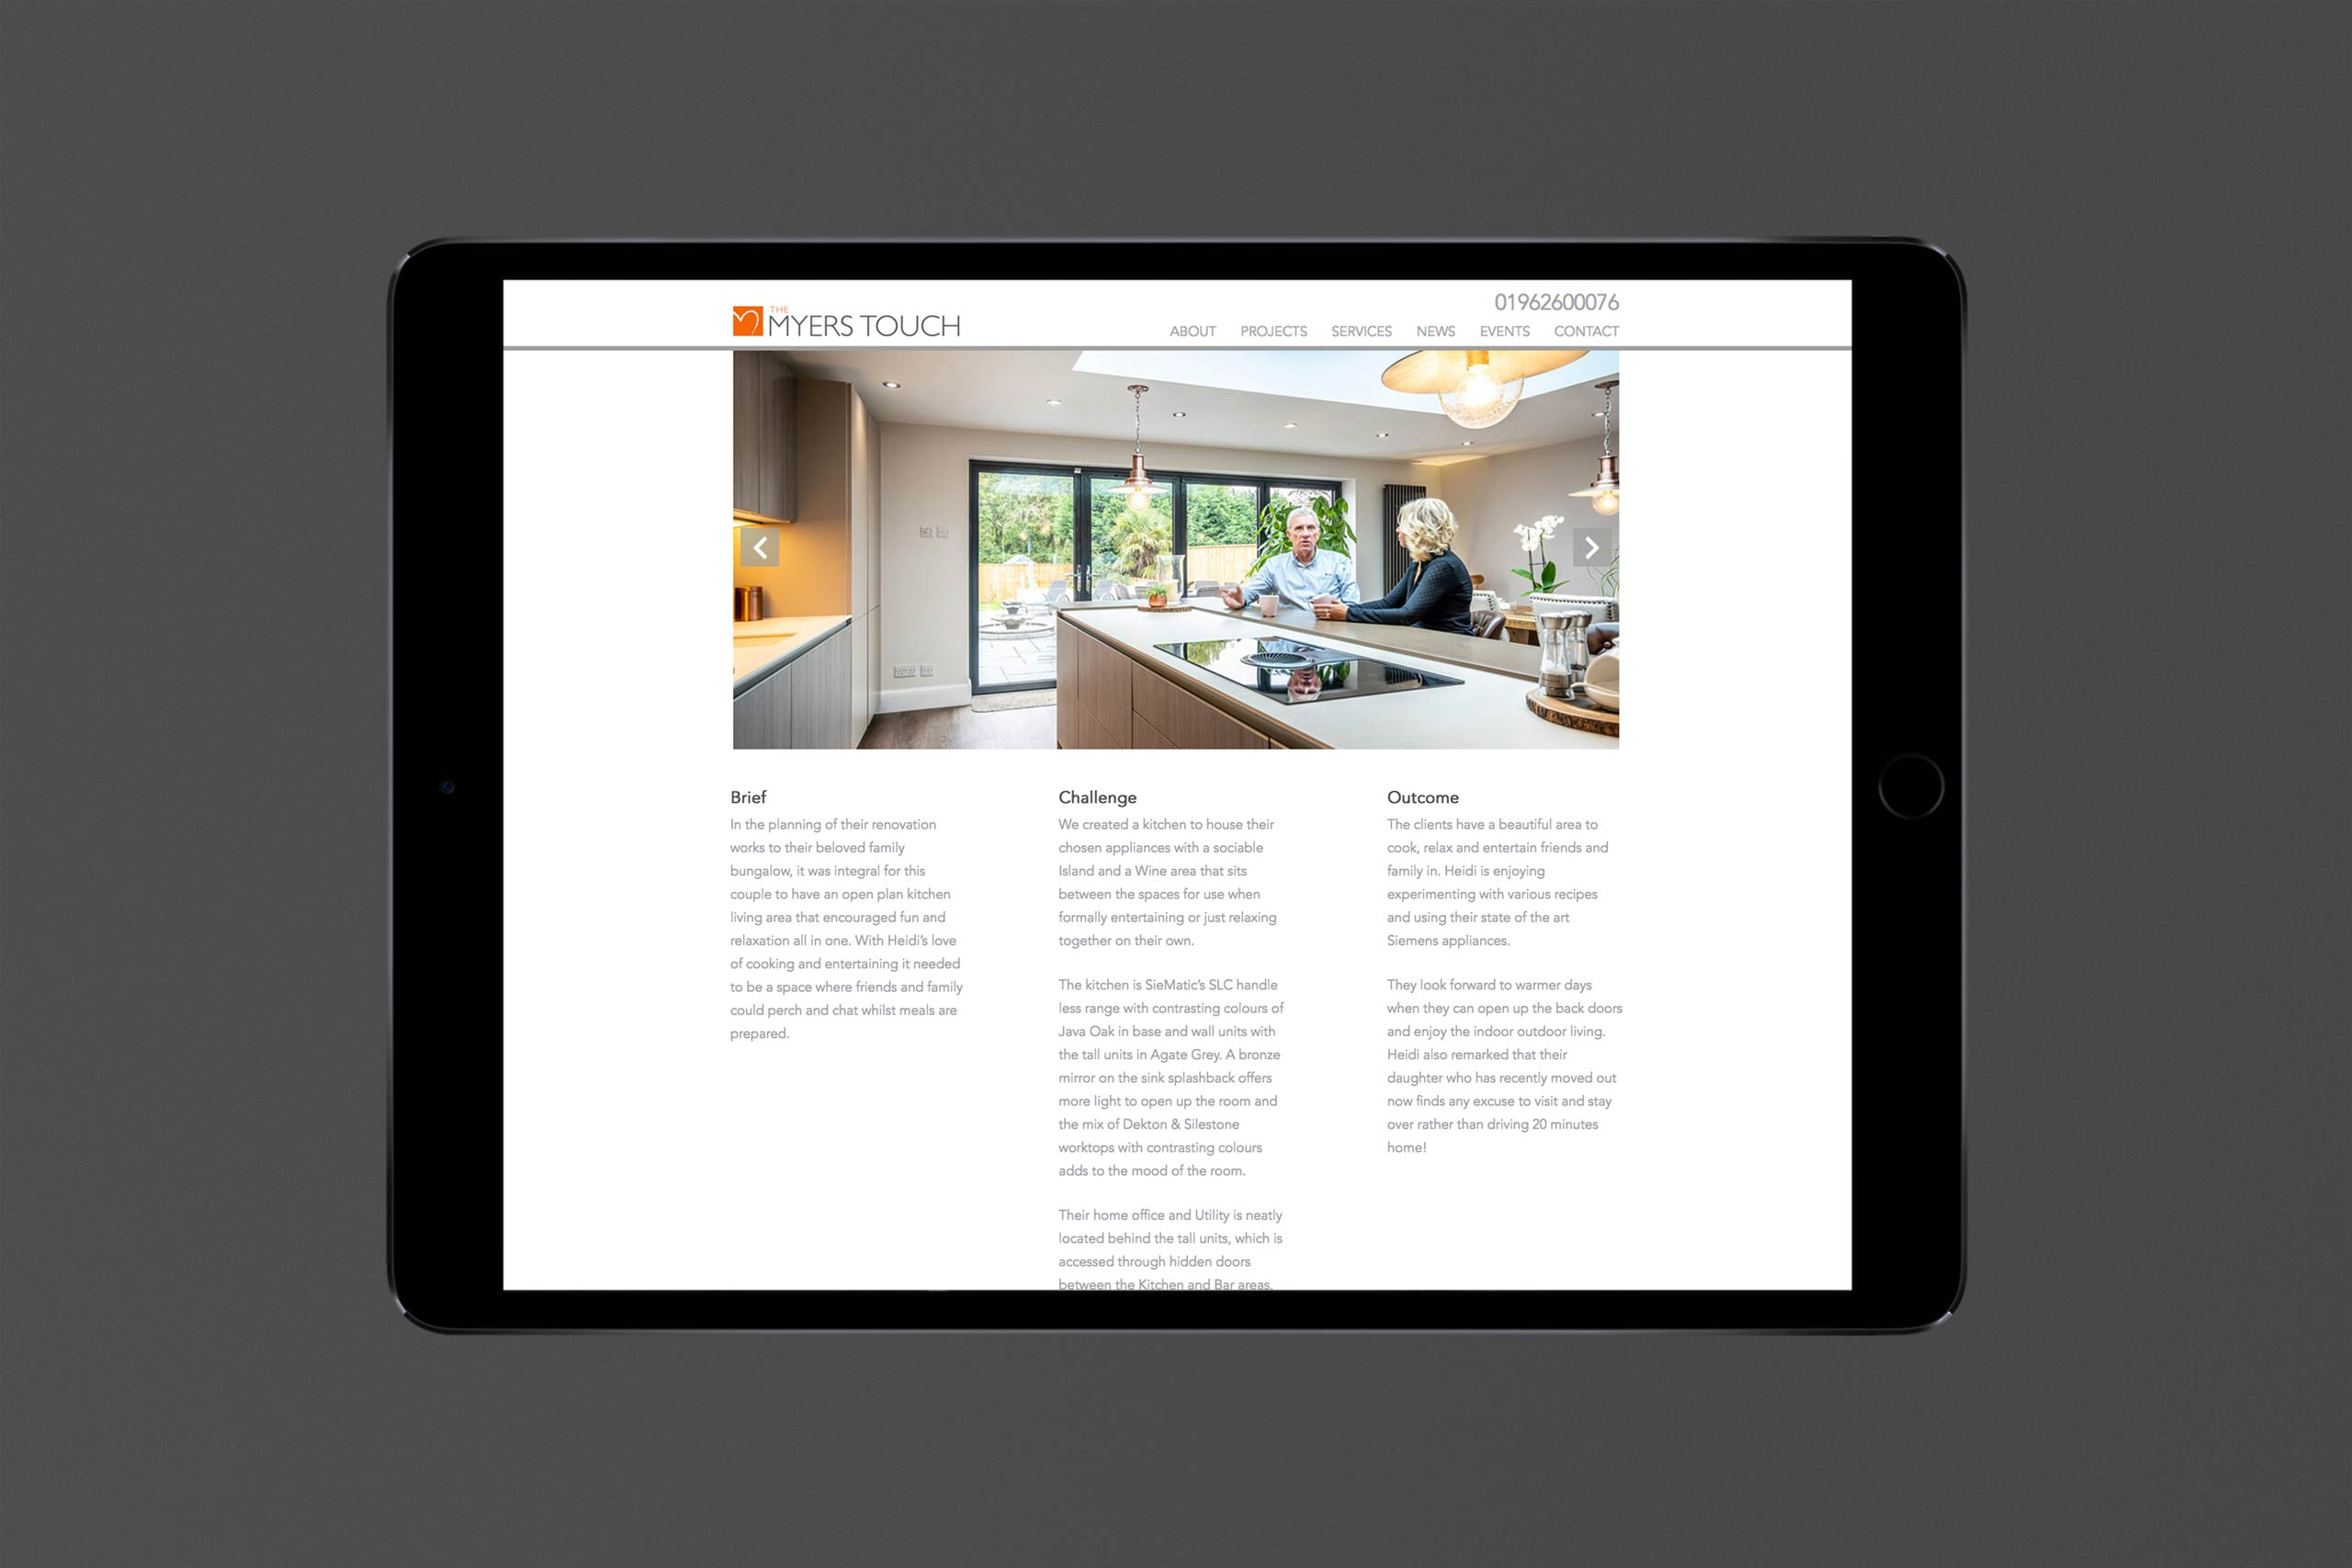 Interior Design case studies | The Myers Touch Case study example